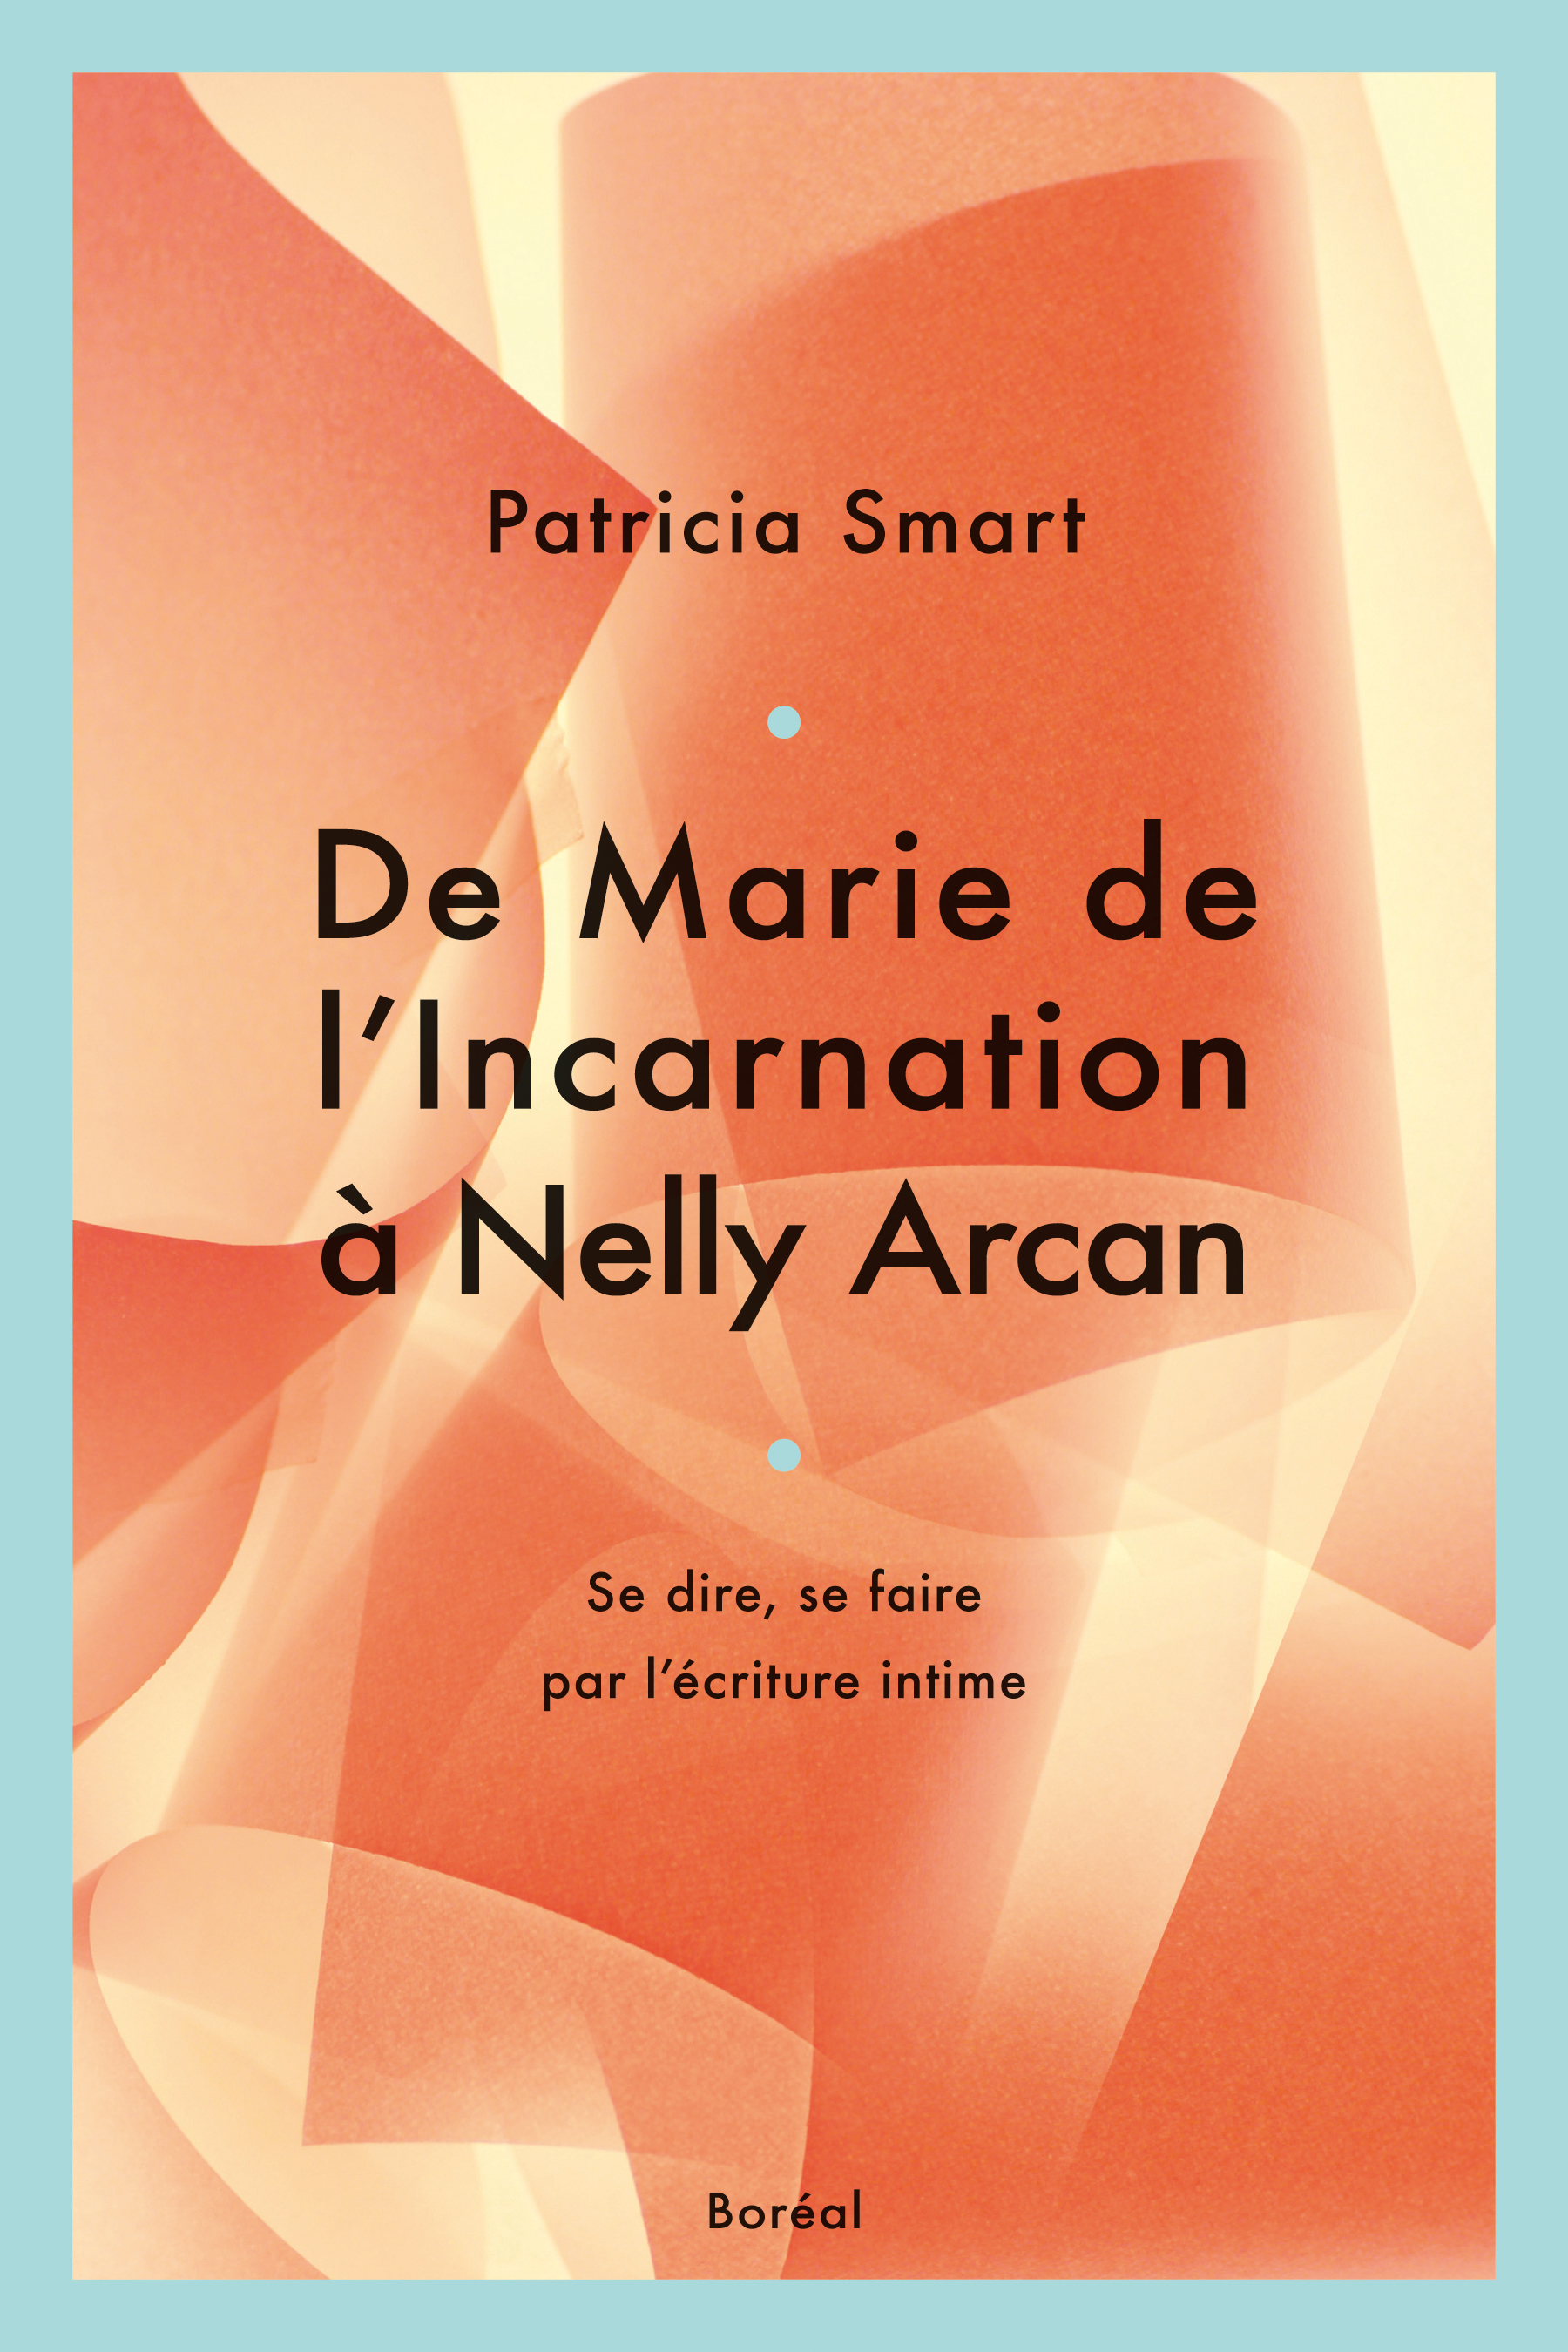 De Marie de L'Incarnation à Nelly Arcan